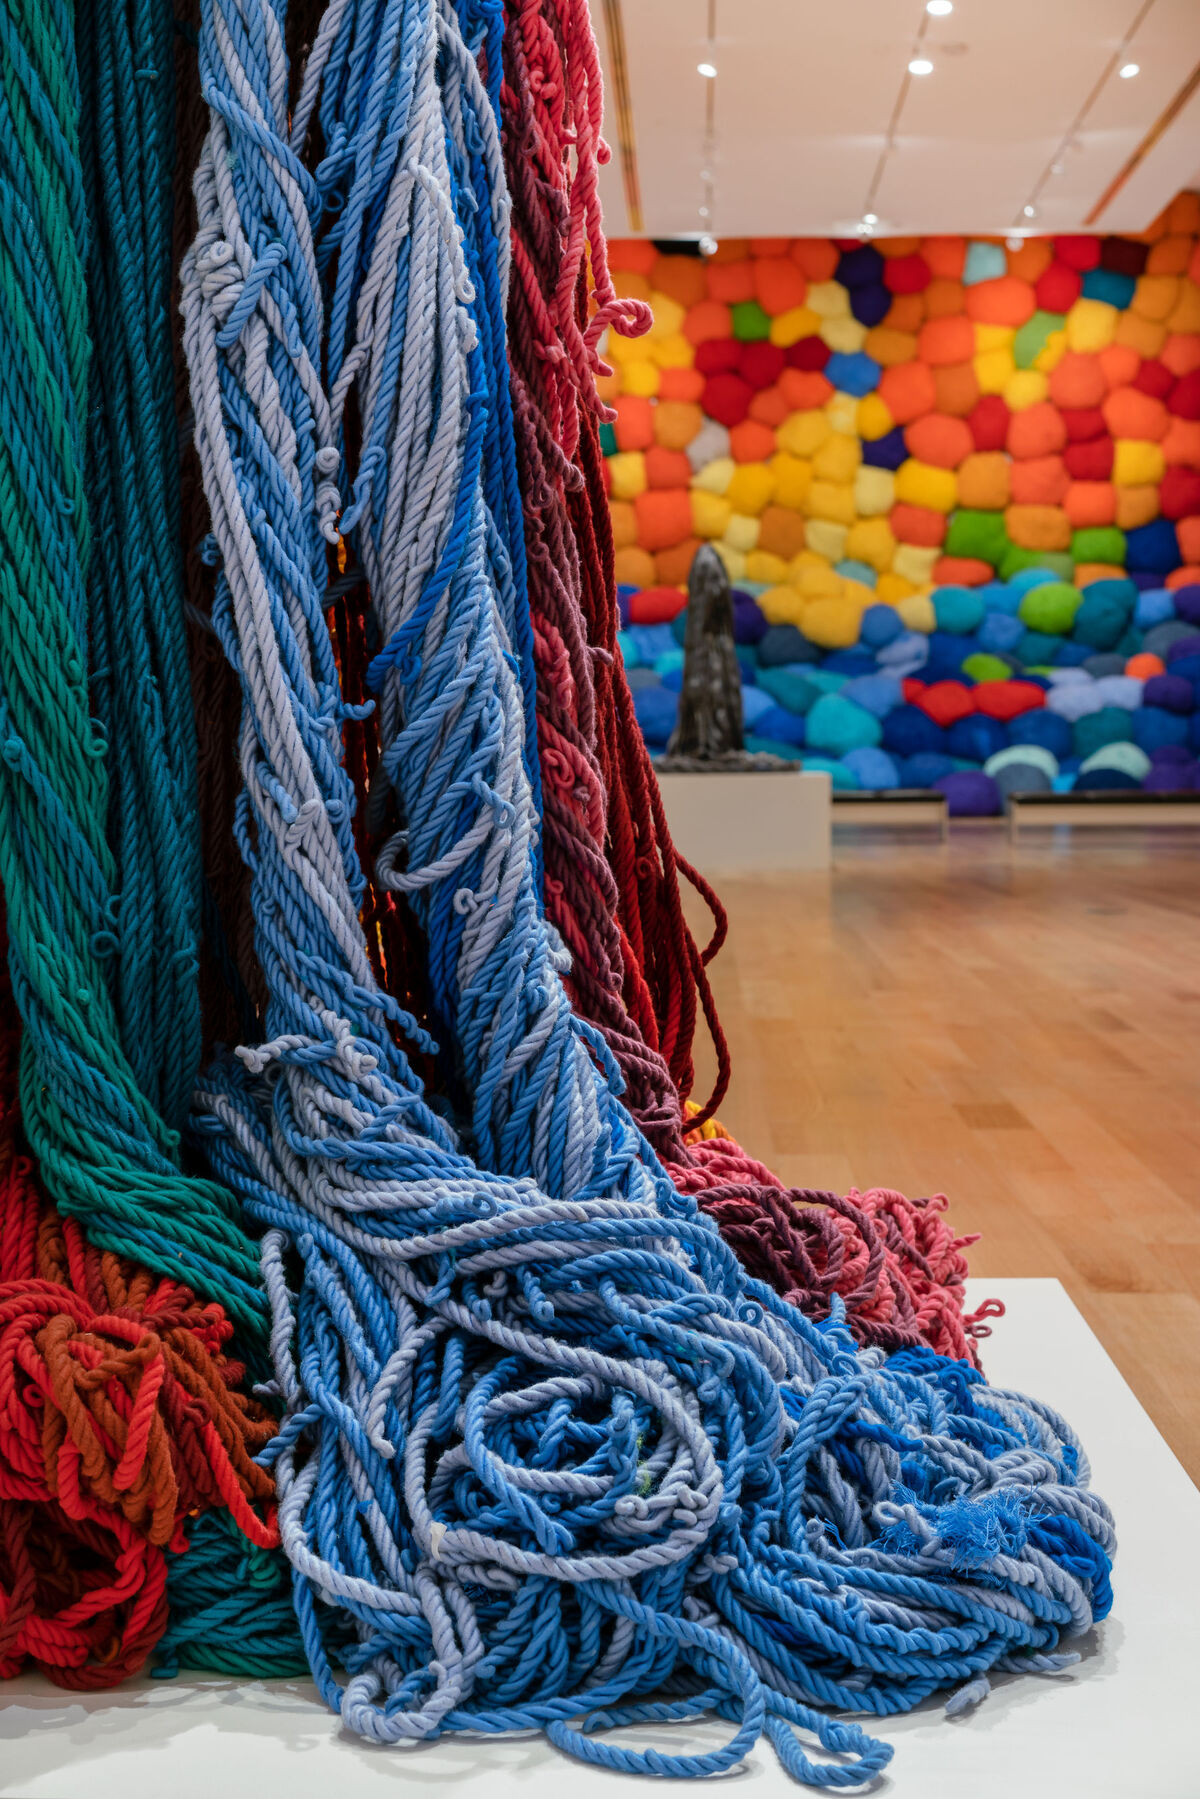 """Installation view of """"Sheila Hicks: Campo Abierto (Open Field),"""" at The Bass, 2019. Photo by Zachary Balber. Courtesy of The Bass, Miami Beach."""